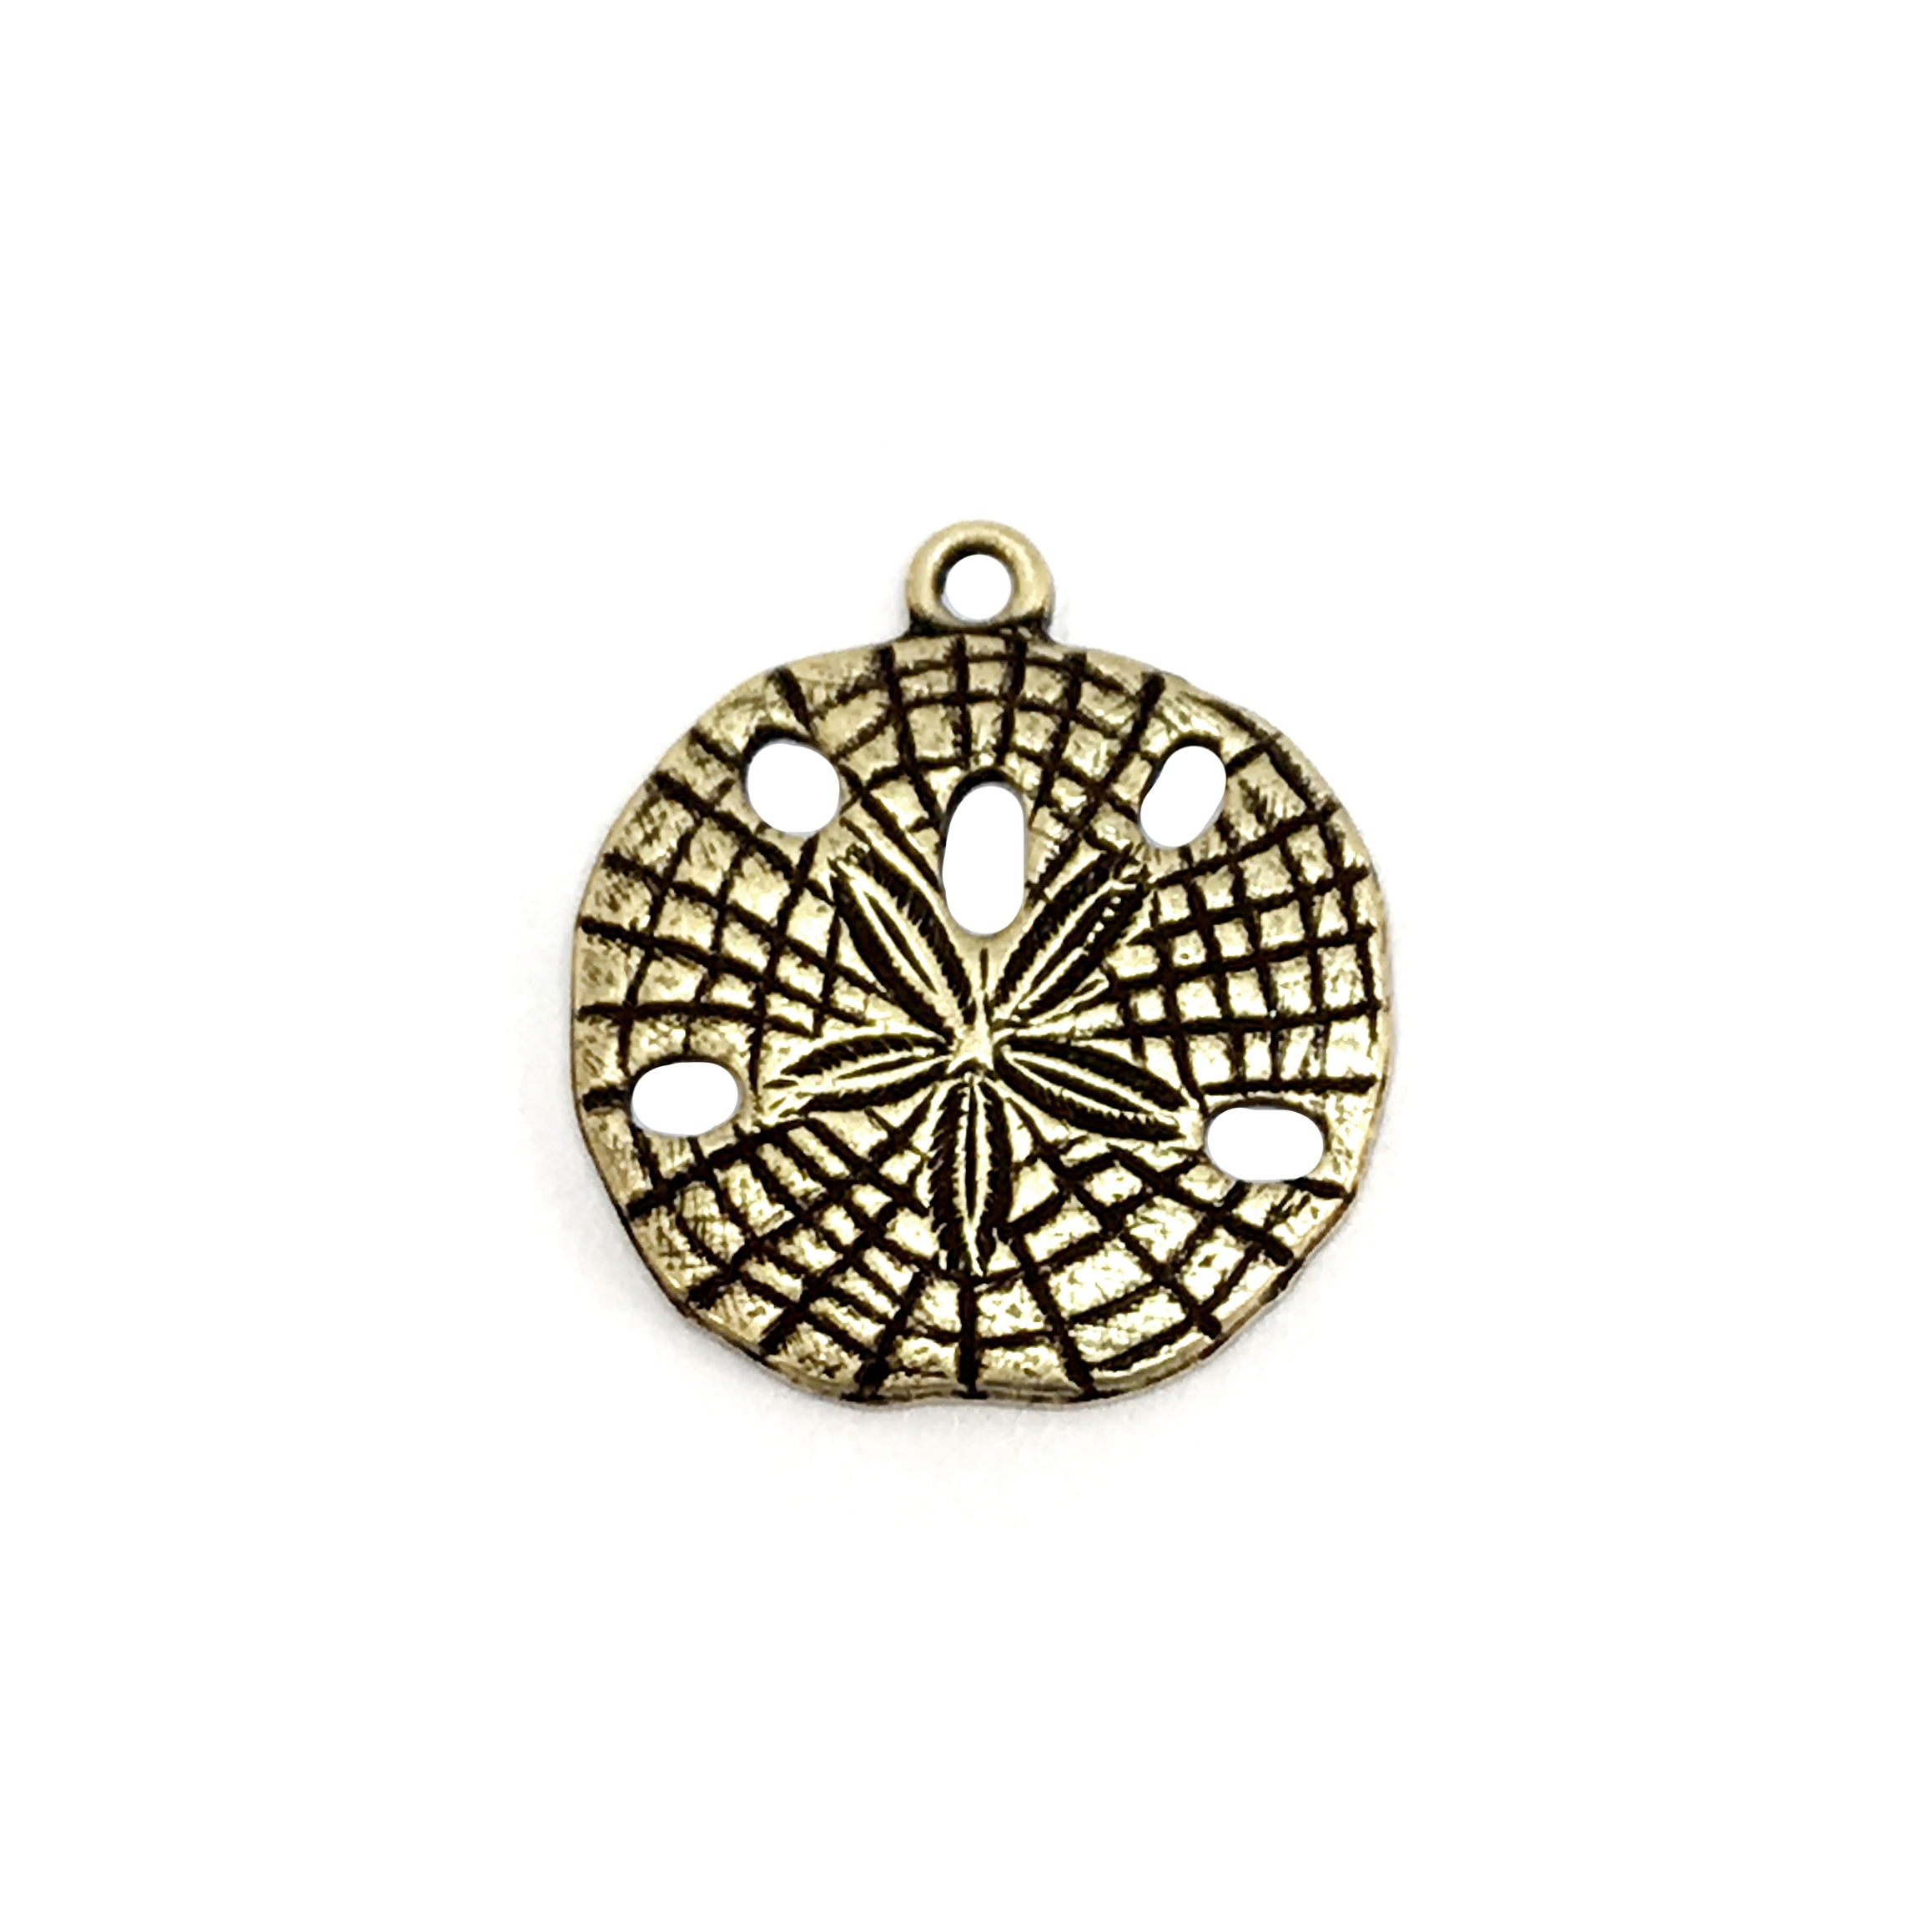 sand dollars, pendent style, brass ox, pendent, sand dollar charms, sea jewelry, beach jewelry, brass stamping, 18mm, us made, B'sue Boutiques, antique brass, nickel free, jewelry making, vintage supplies, jewelry supplies, jewelry findings, 04478